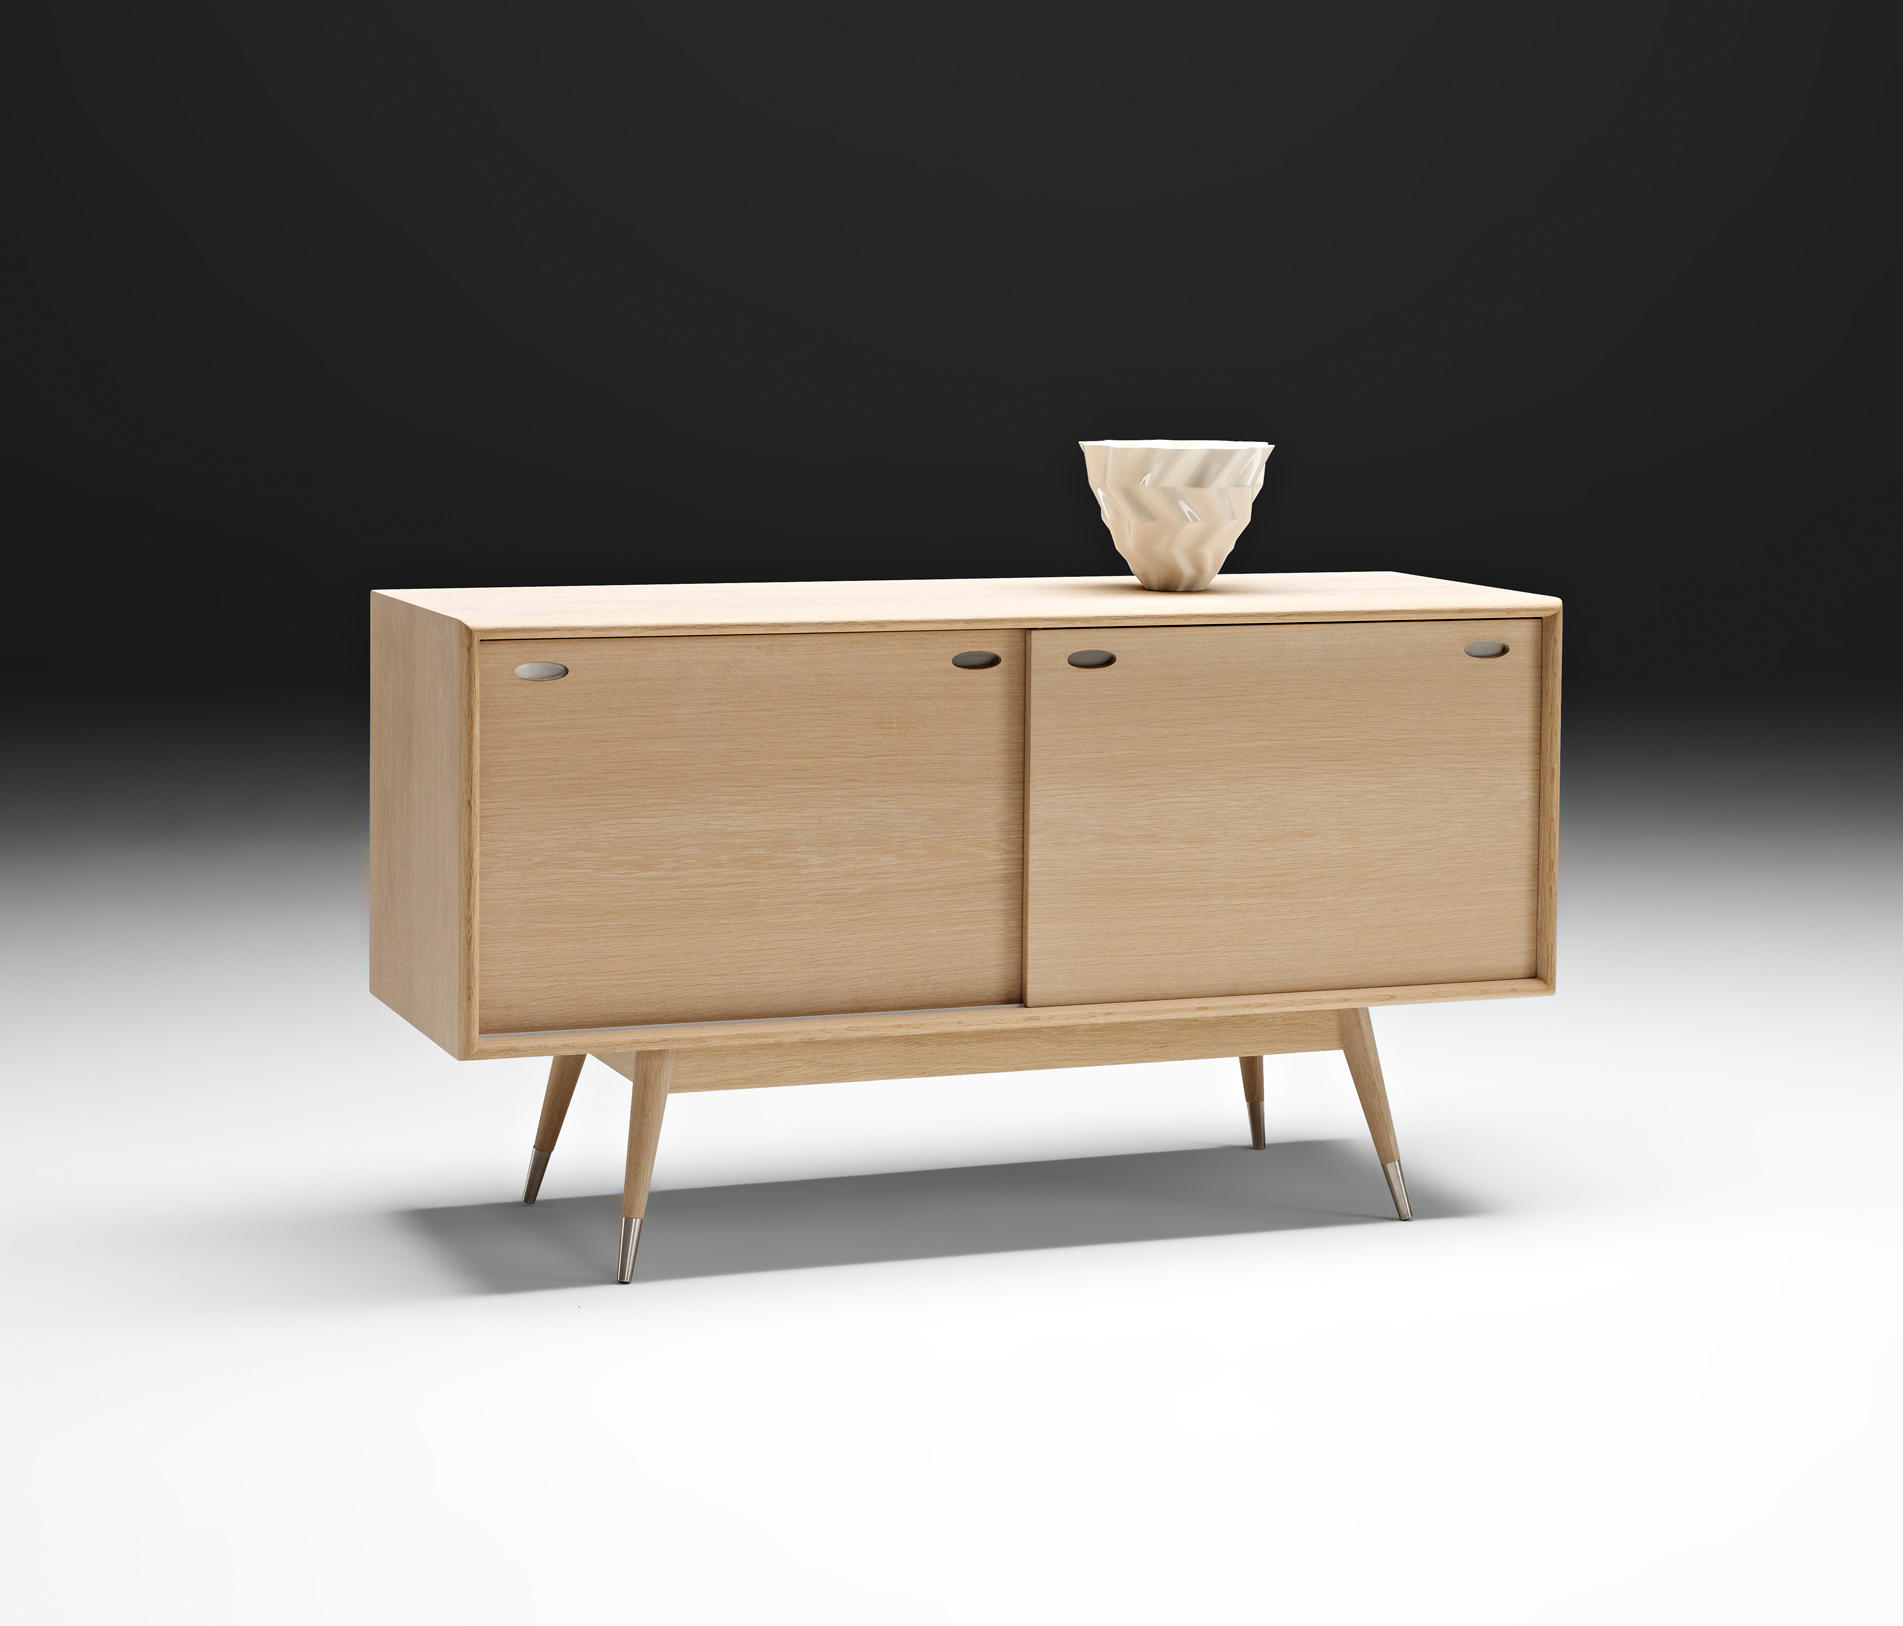 Deko Sideboard Ak 2830 Sideboard Sideboards From Naver Collection